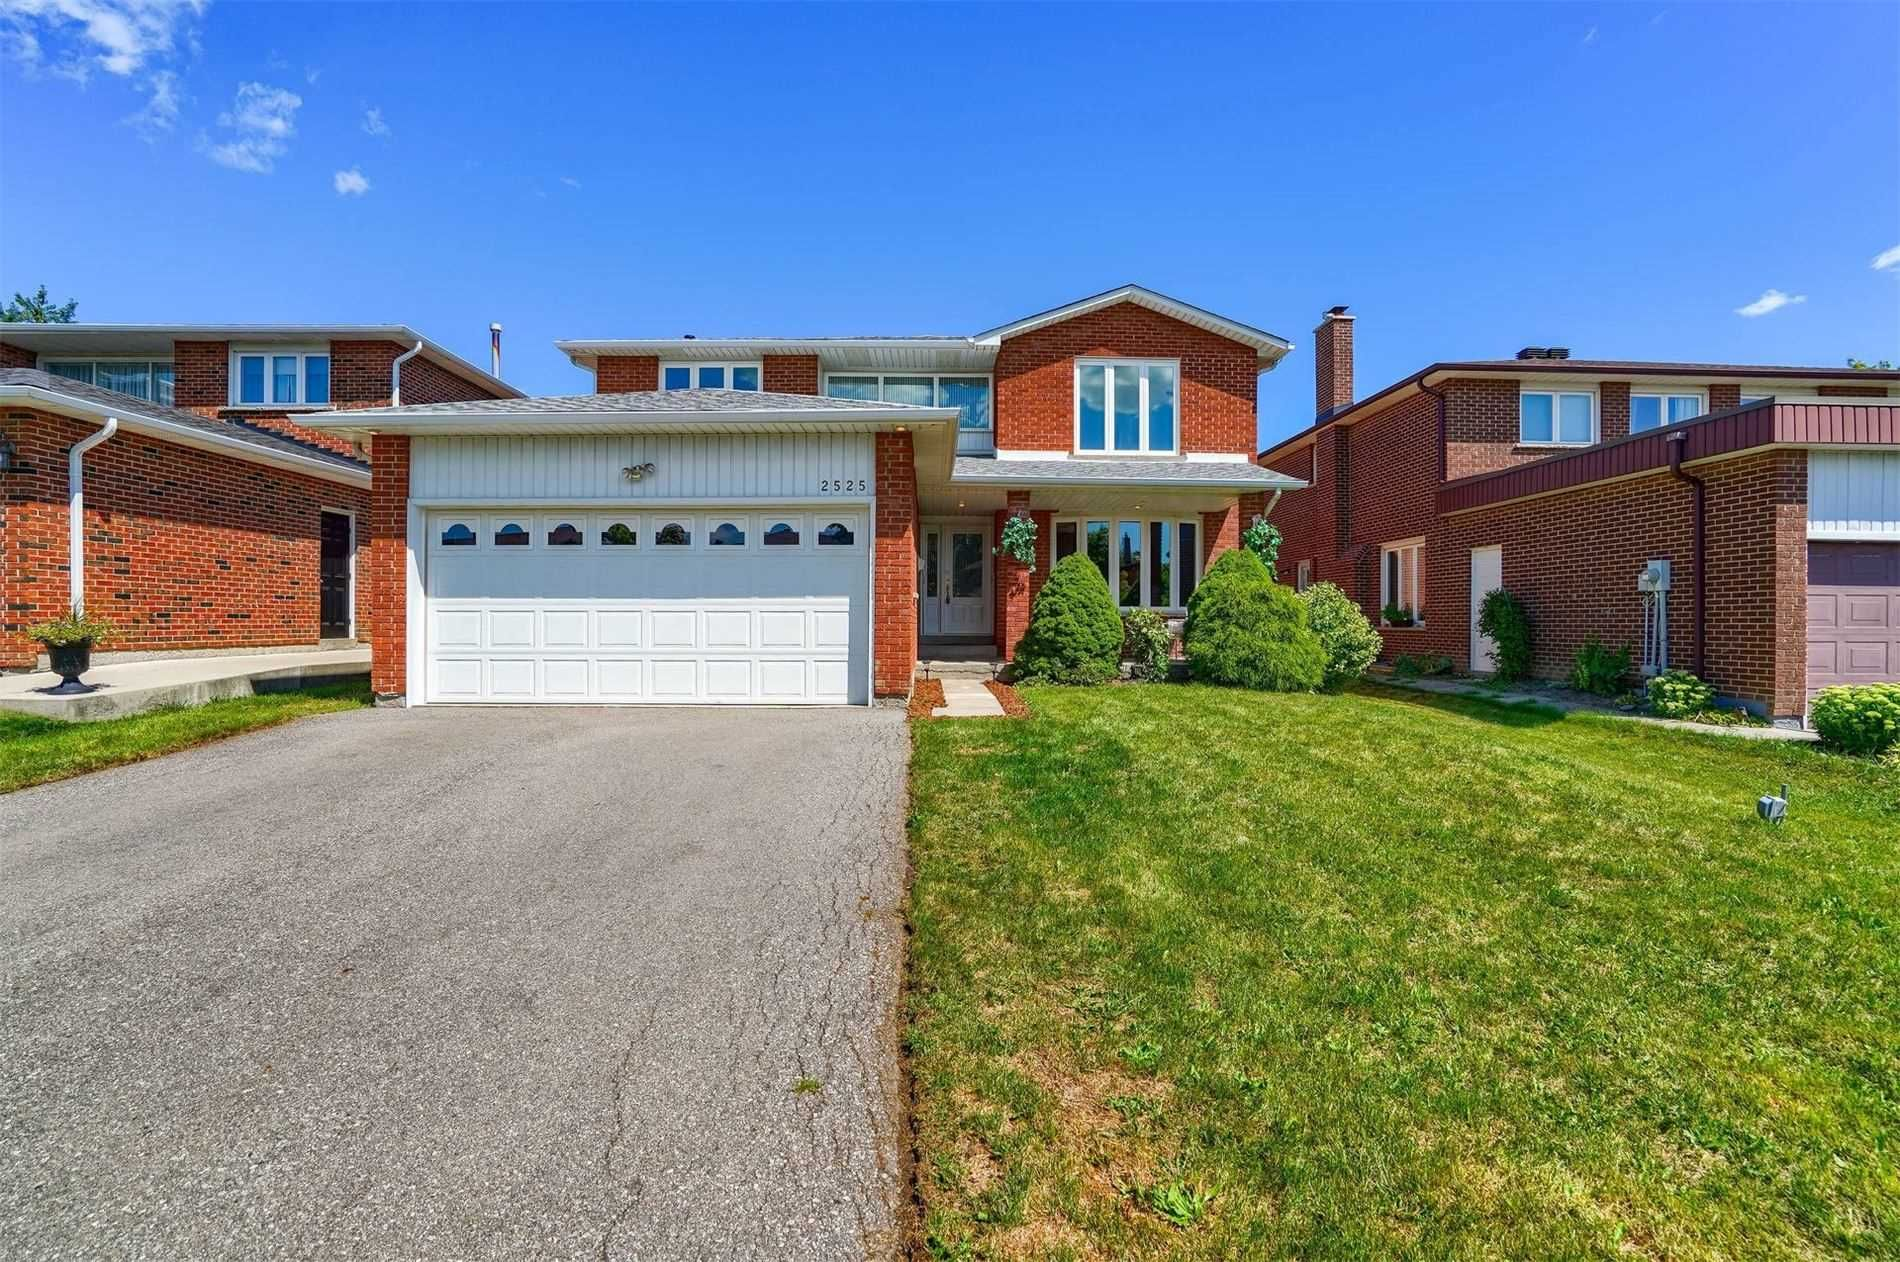 Main Photo: 2525 Pollard Drive in Mississauga: Erindale House (2-Storey) for sale : MLS®# W4887592